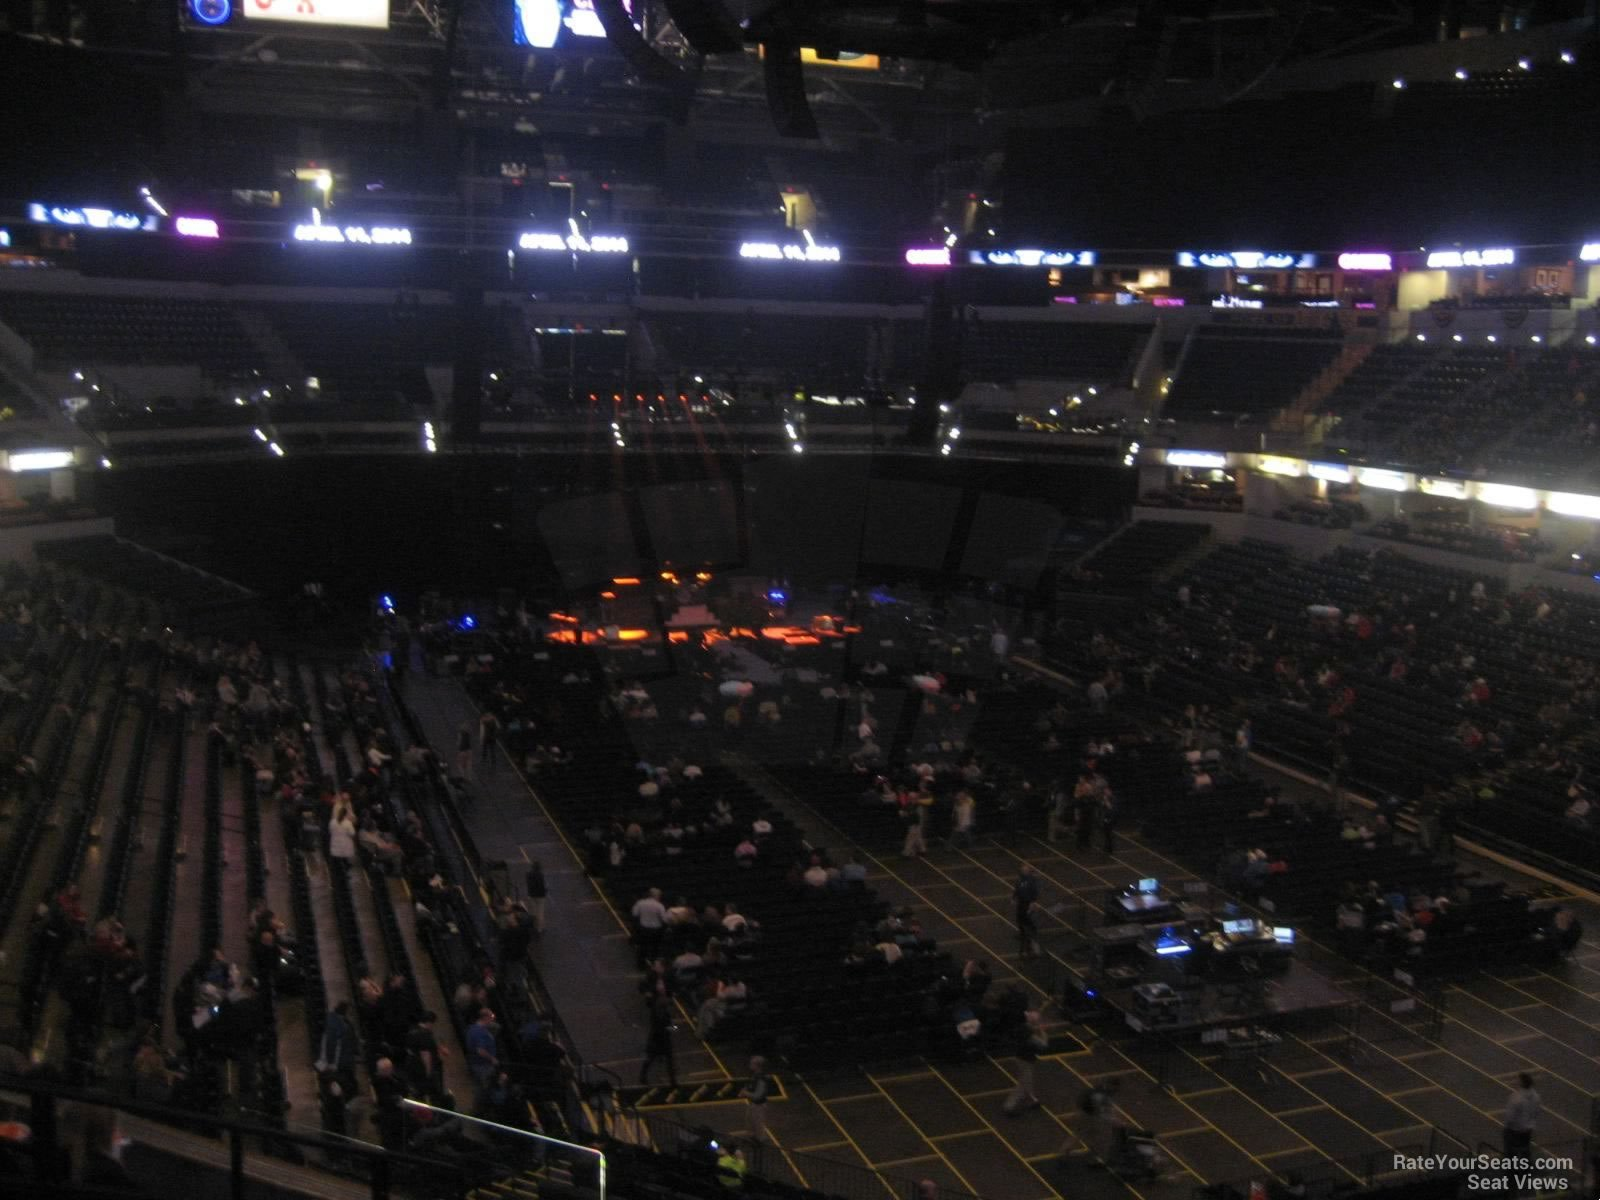 Bankers Life Fieldhouse Section 112 Concert Seating